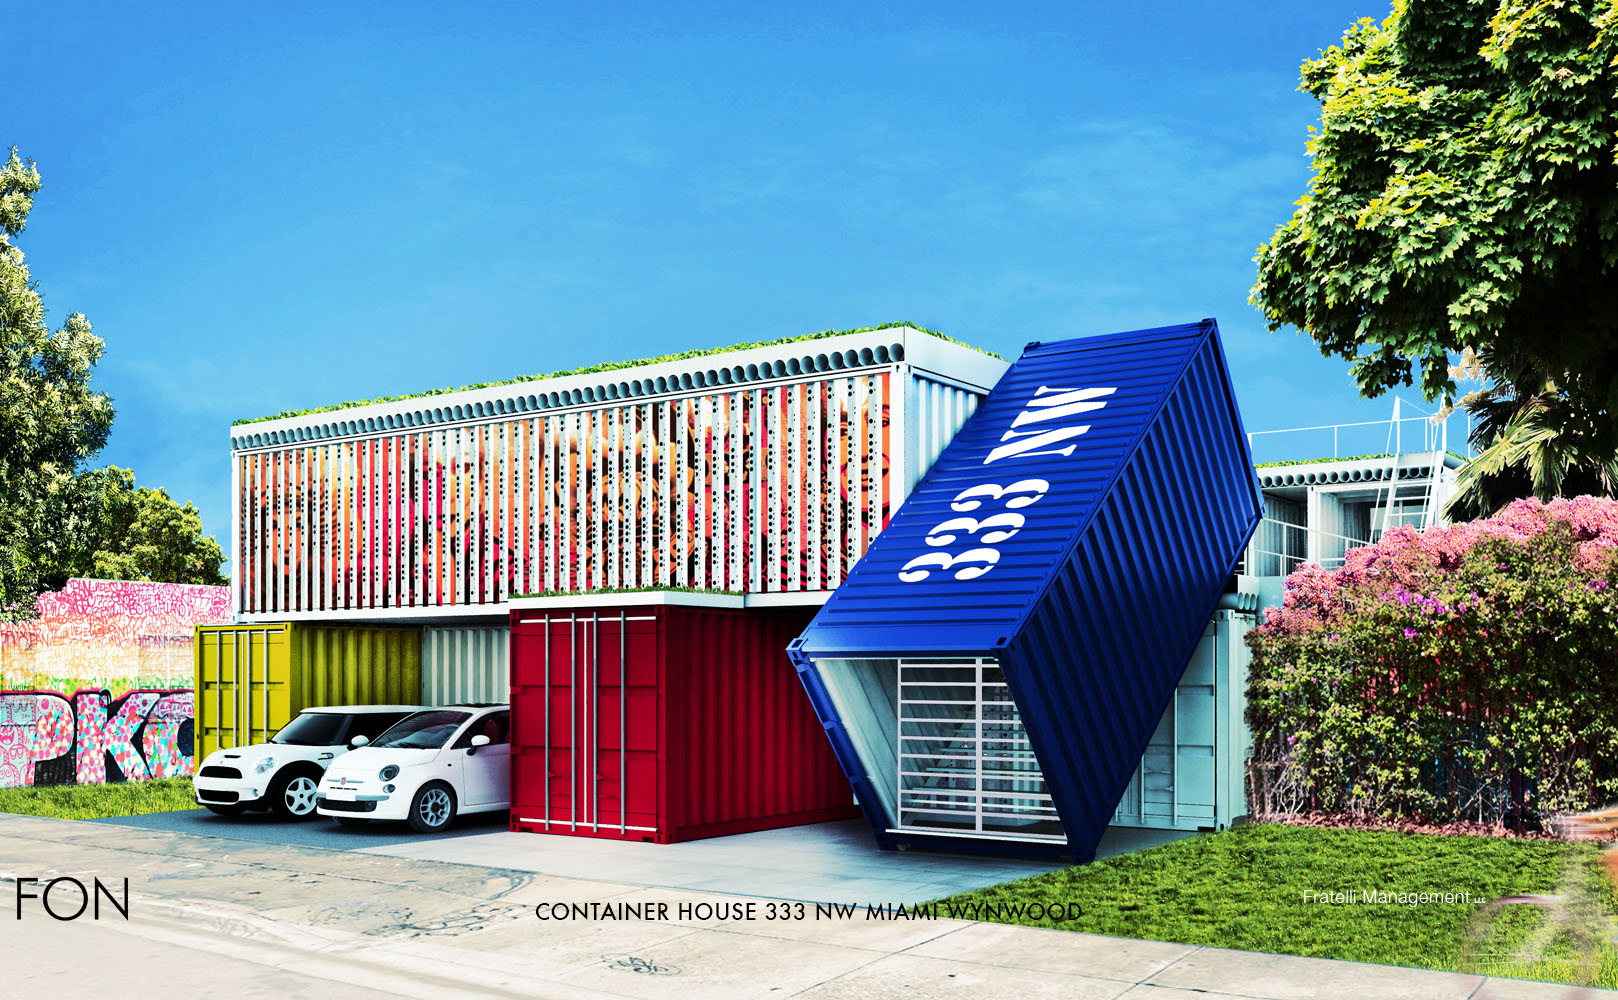 CONTAINER HOUSE 333 NW MIAMI WYNWOOD }